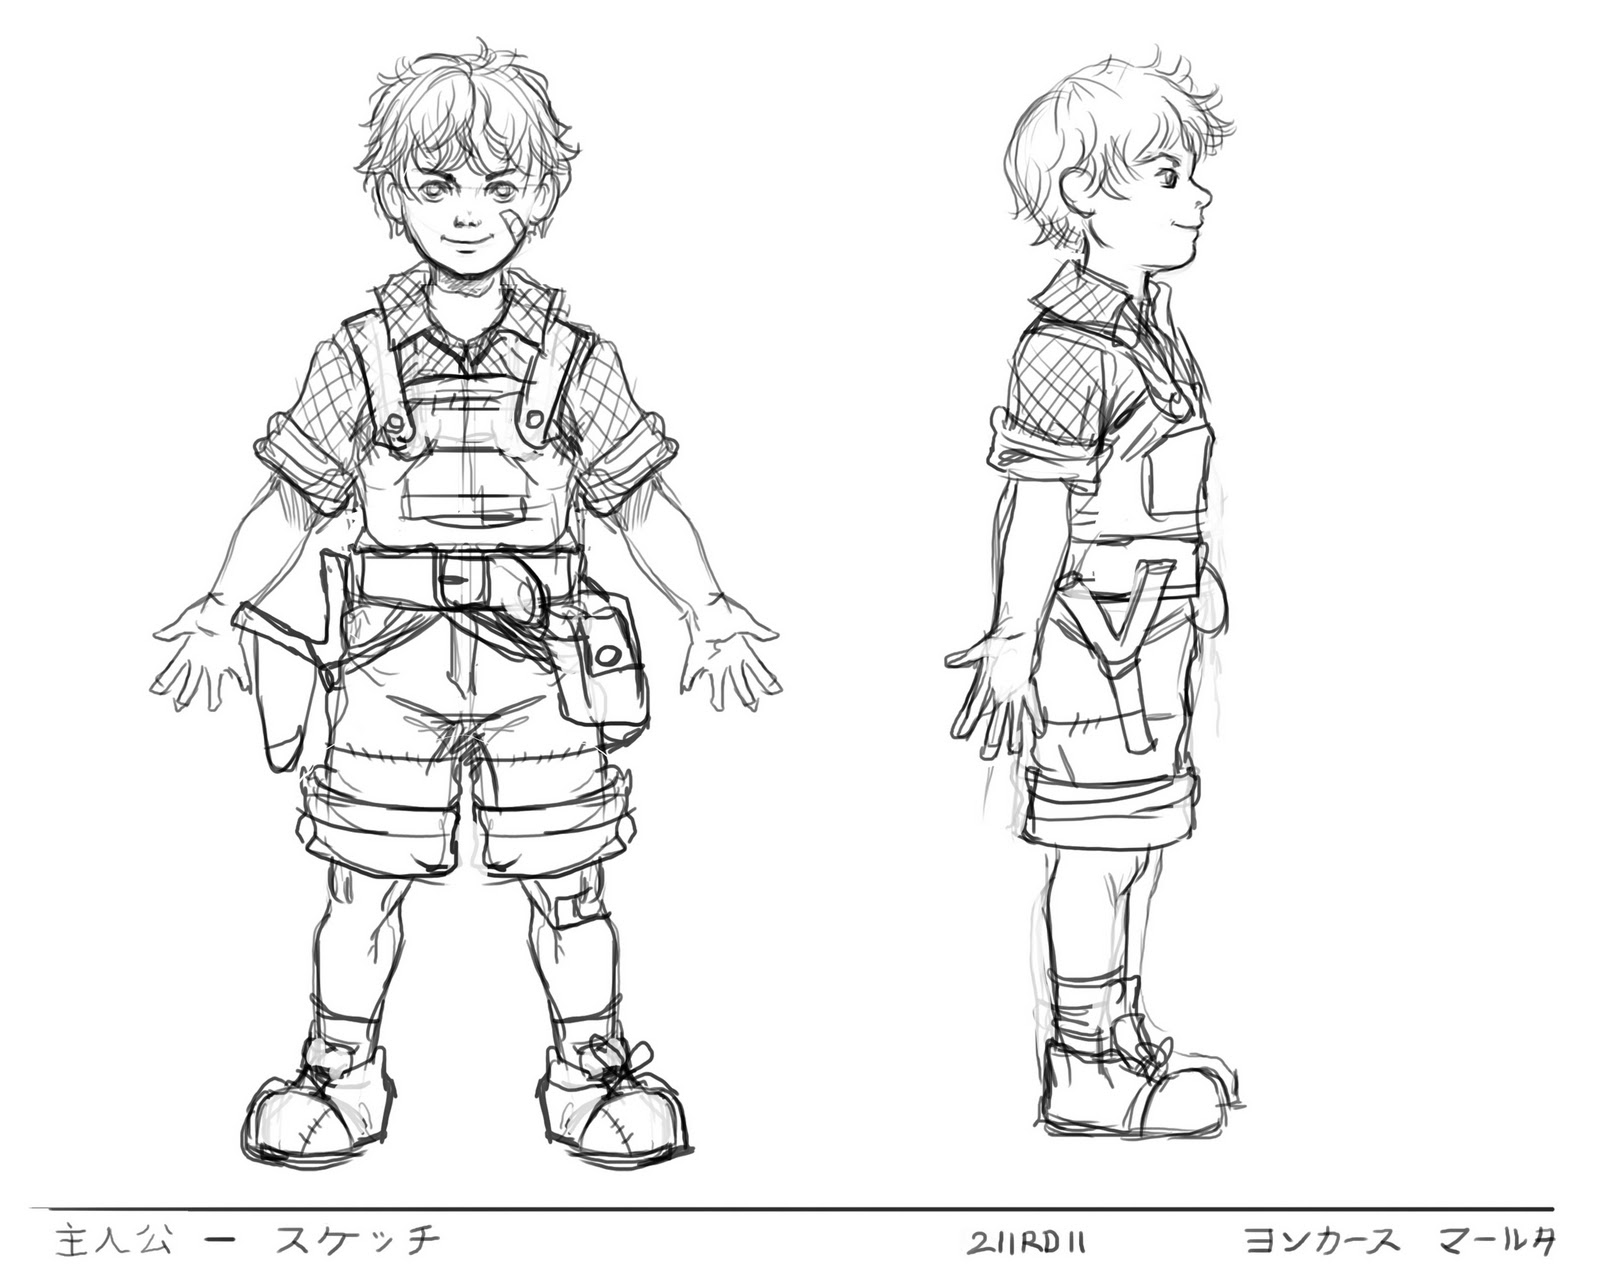 Game Design Character Classes : Marthe sketches game character design class